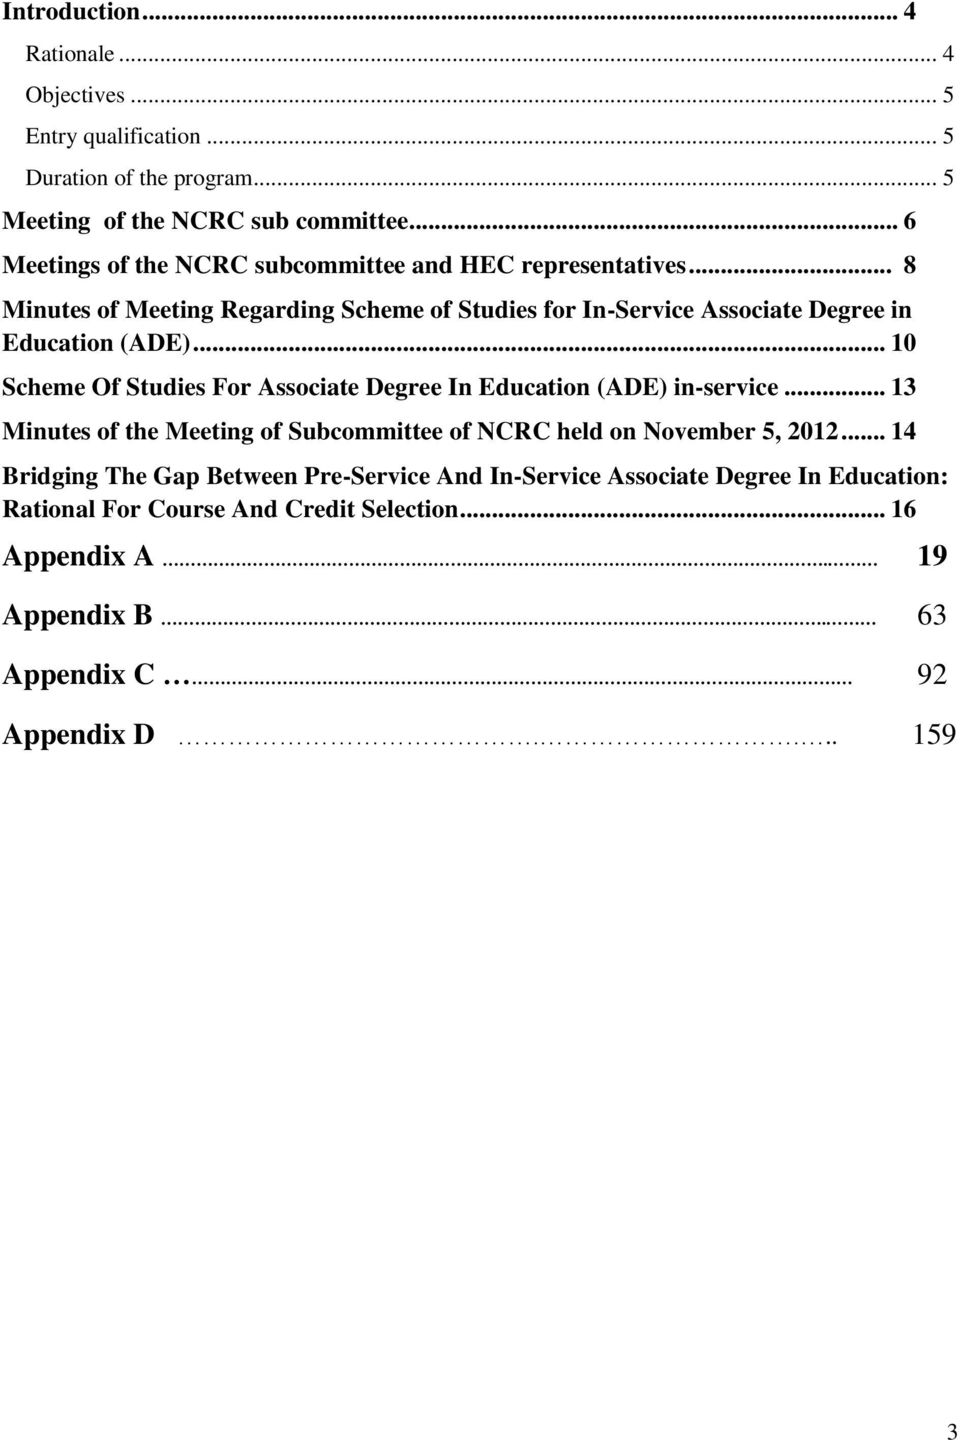 .. 10 Scheme Of Studies For Associate Degree In Education (ADE) in-service... 13 Minutes of the Meeting of Subcommittee of NCRC held on November 5, 2012.